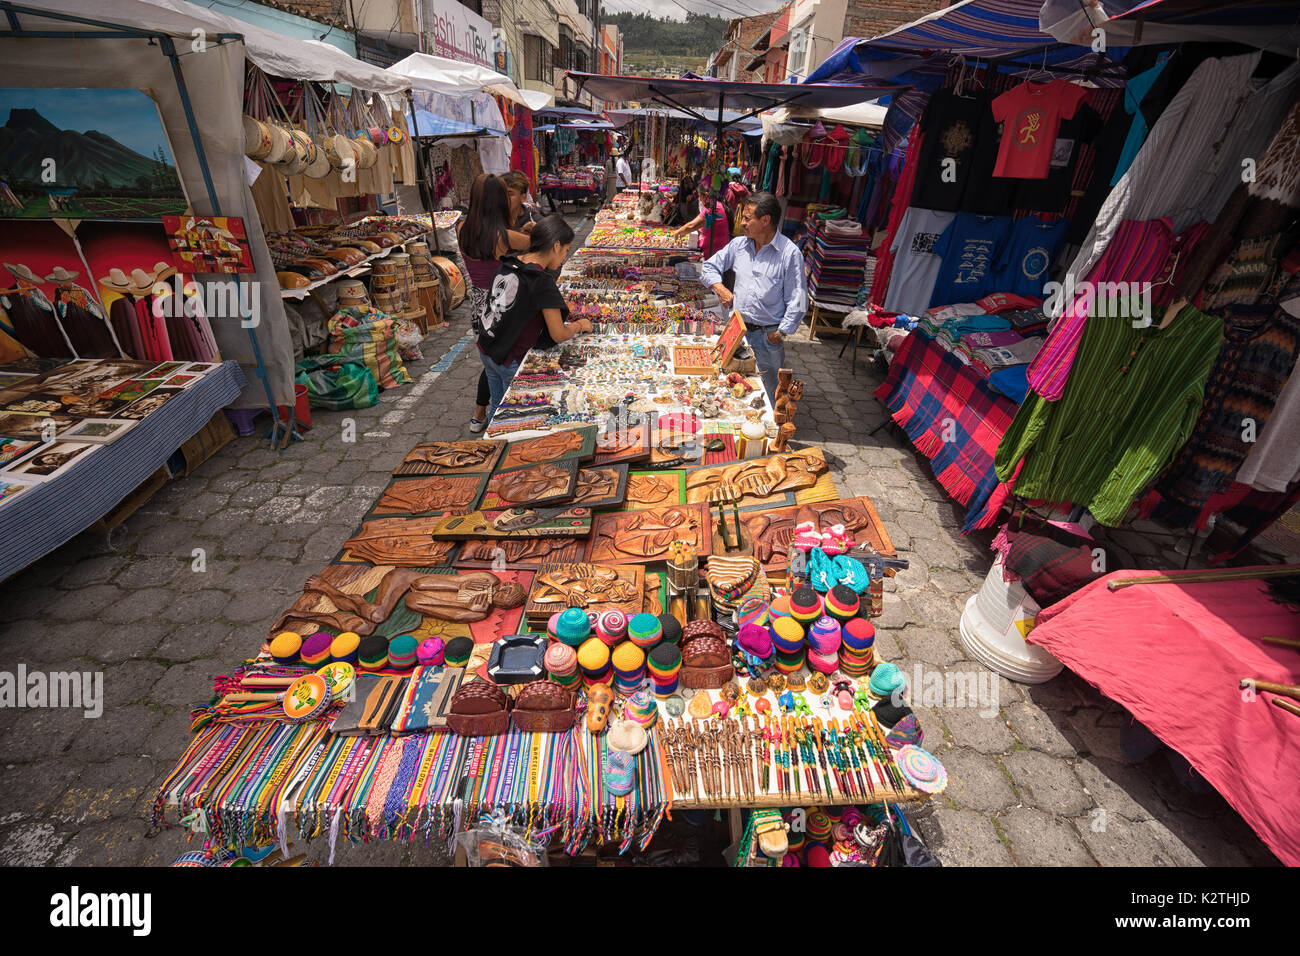 April 29, 2017 Otavalo, Ecuador: indigenous quechua people selling artisan gifts on stands set up on the street Stock Photo